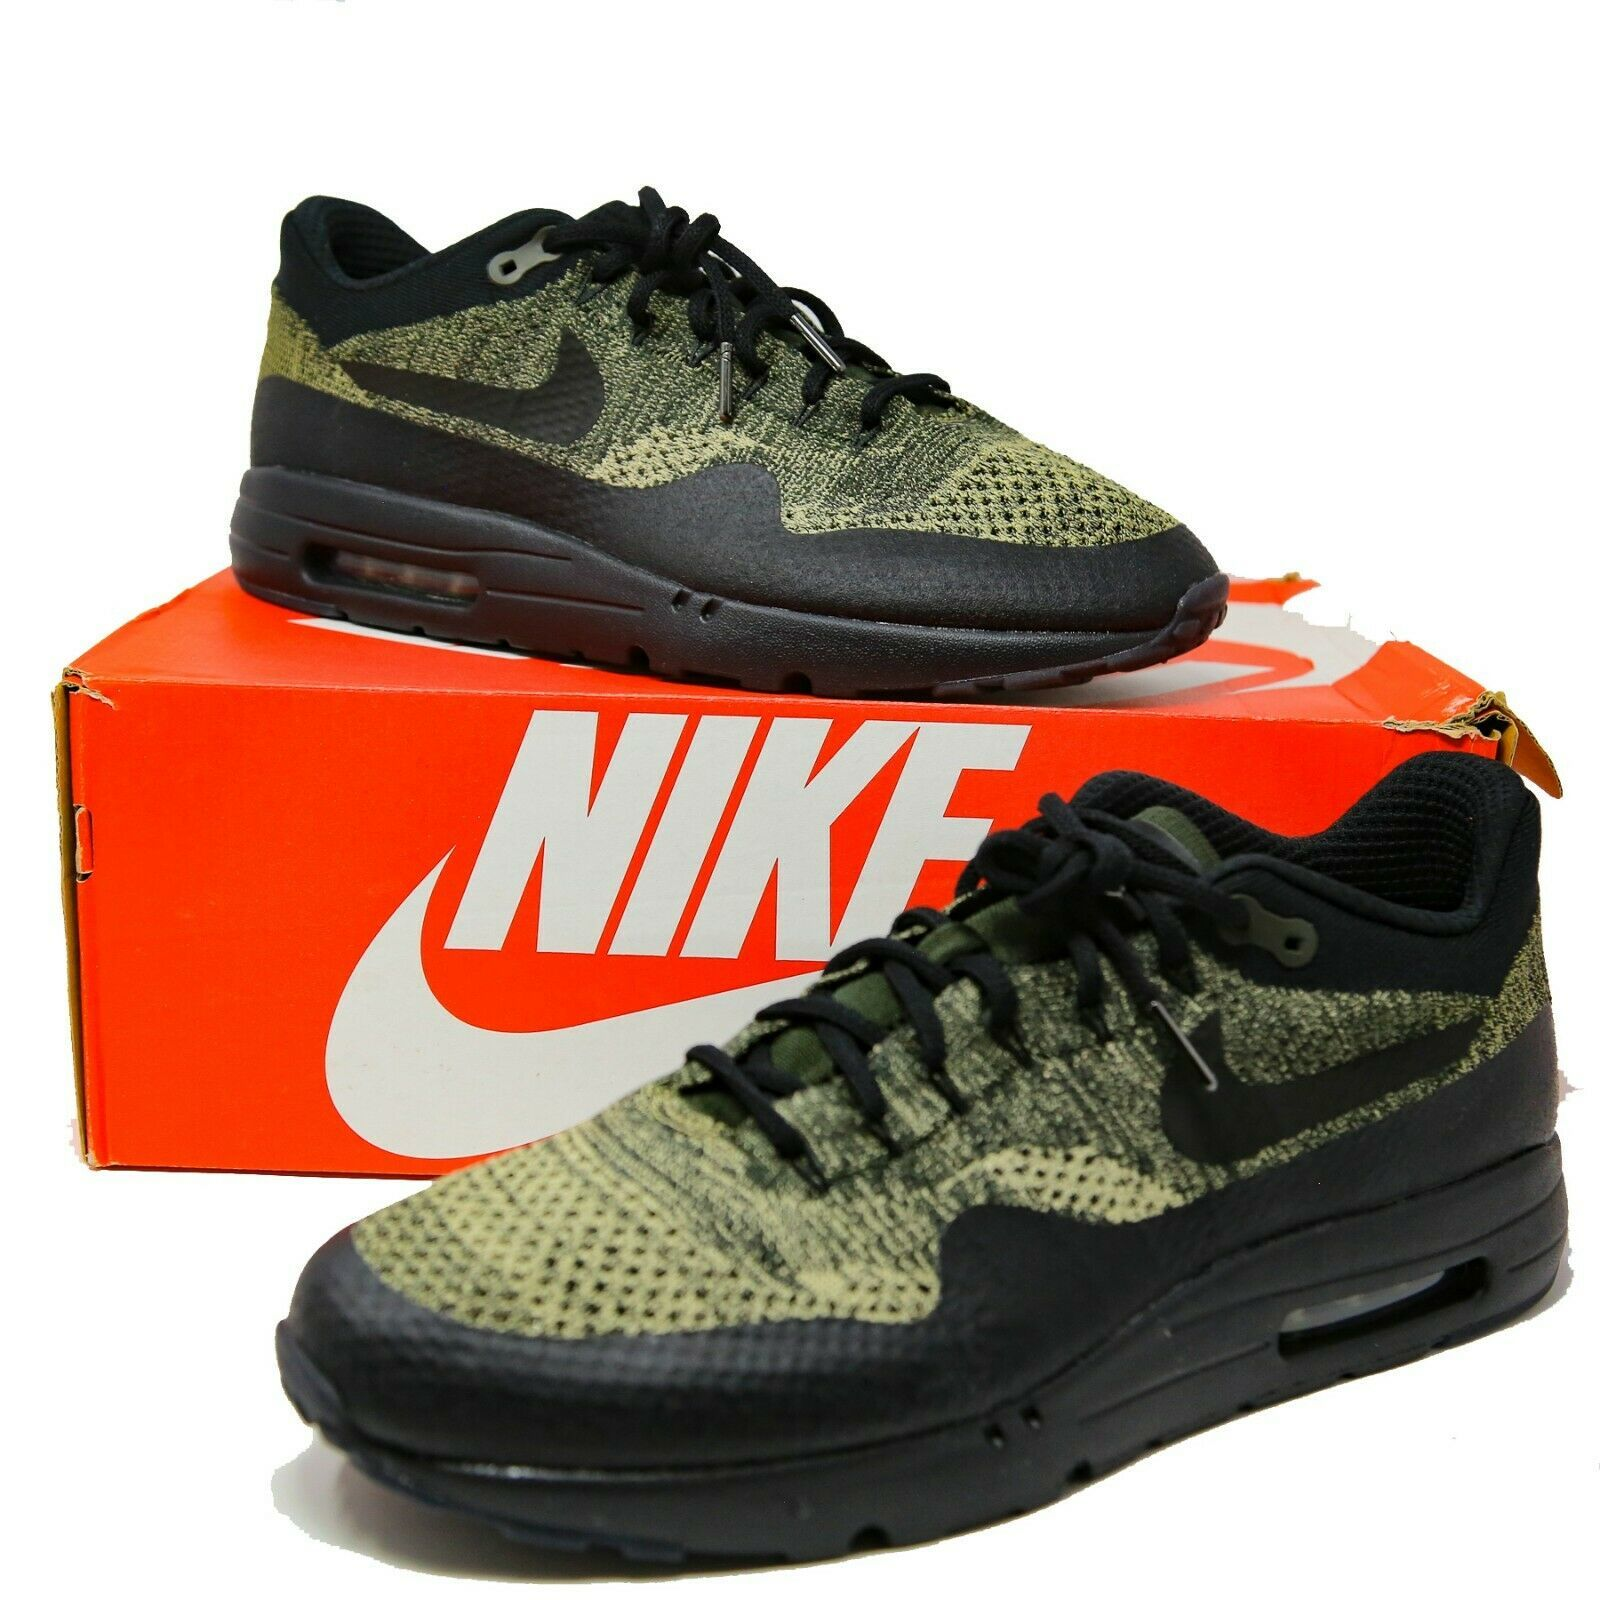 395416658b Nike Air Max 1 Ultra Flyknit FK Olive Noir Sequoia Taille 14 856958-203 Eur  48,5 - $173.00